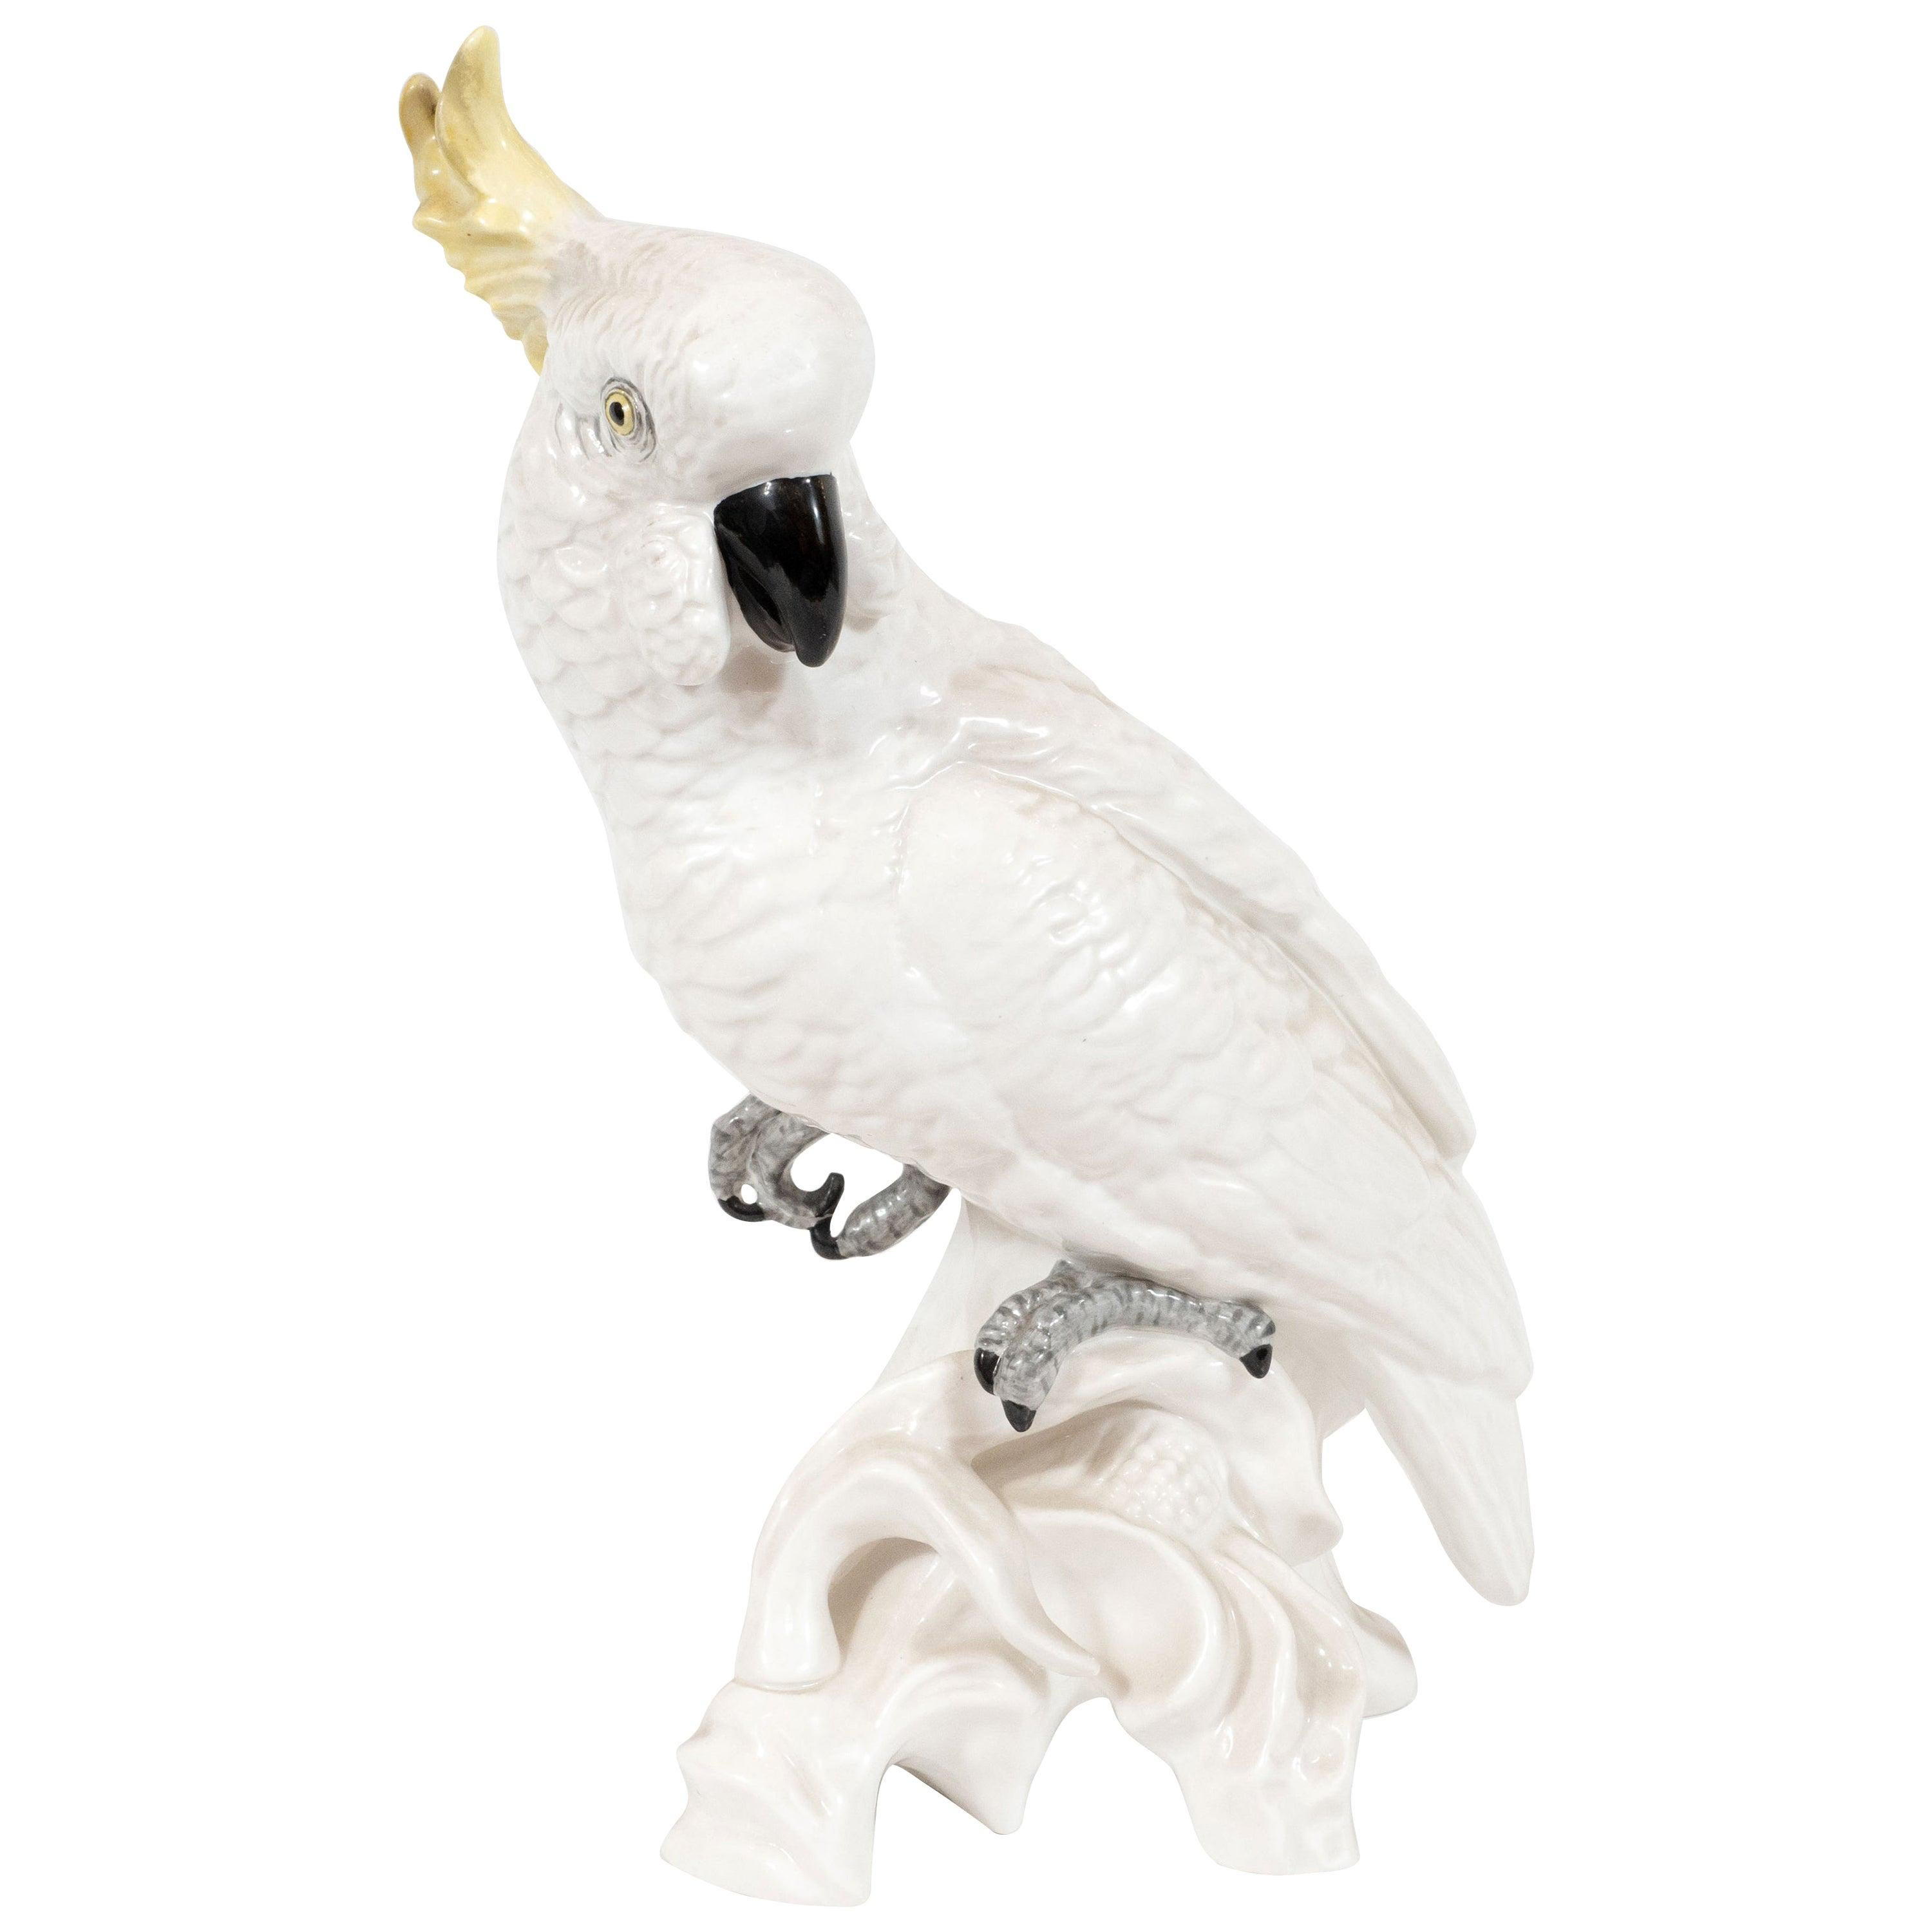 Mid-Century Modern White Porcelain Cockatoo by T.J. Jones for Staffordshire